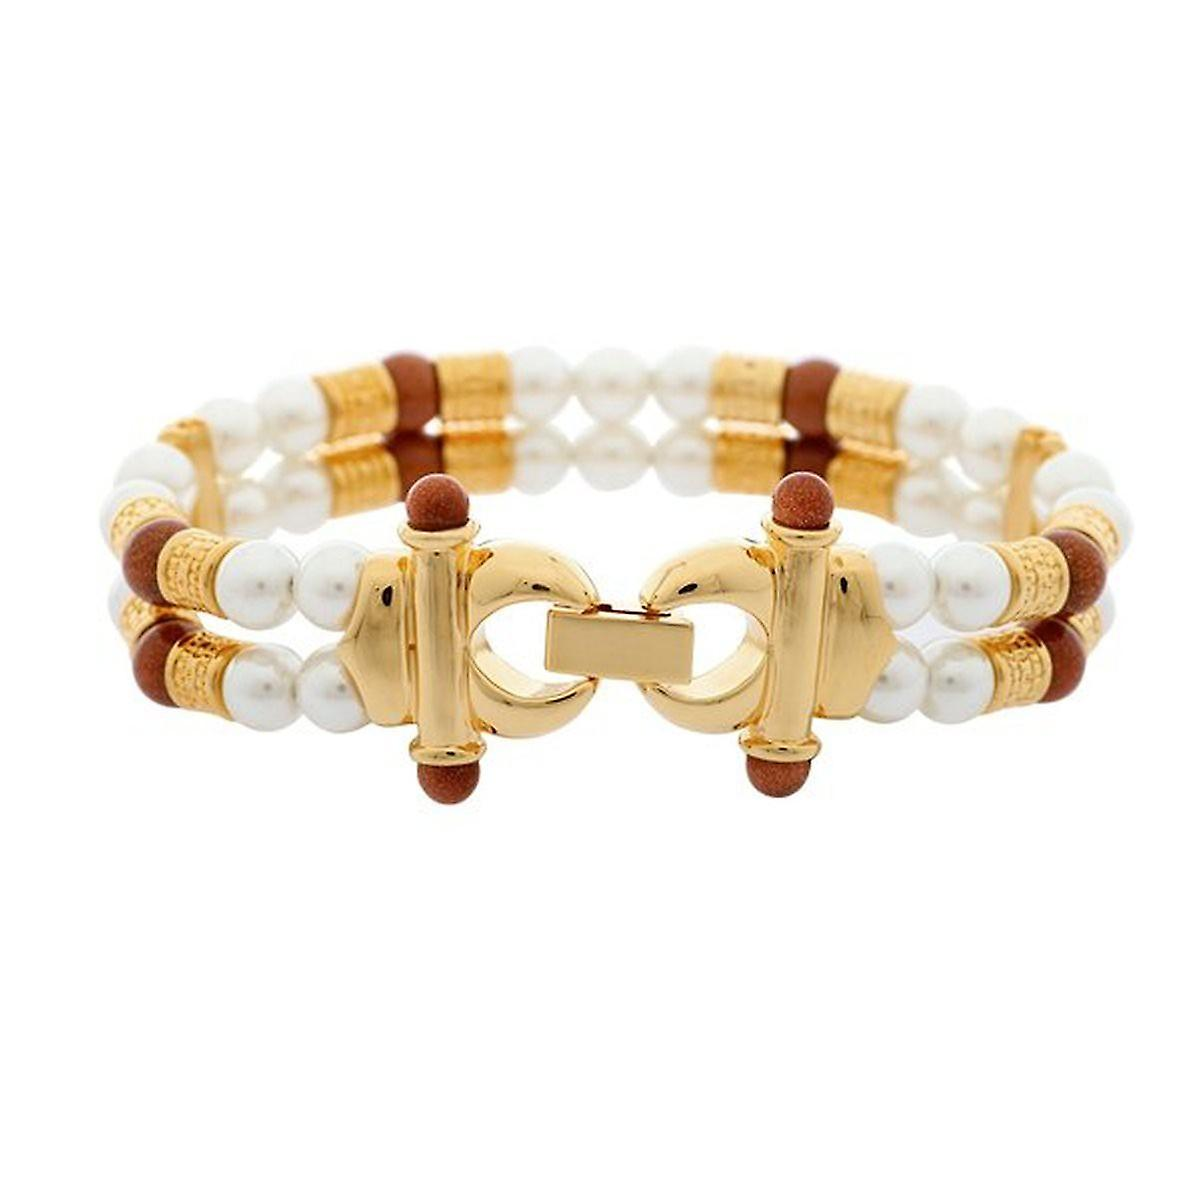 Misaki ladies bracelet stainless steel gold beads TITUS QCRBTITUS